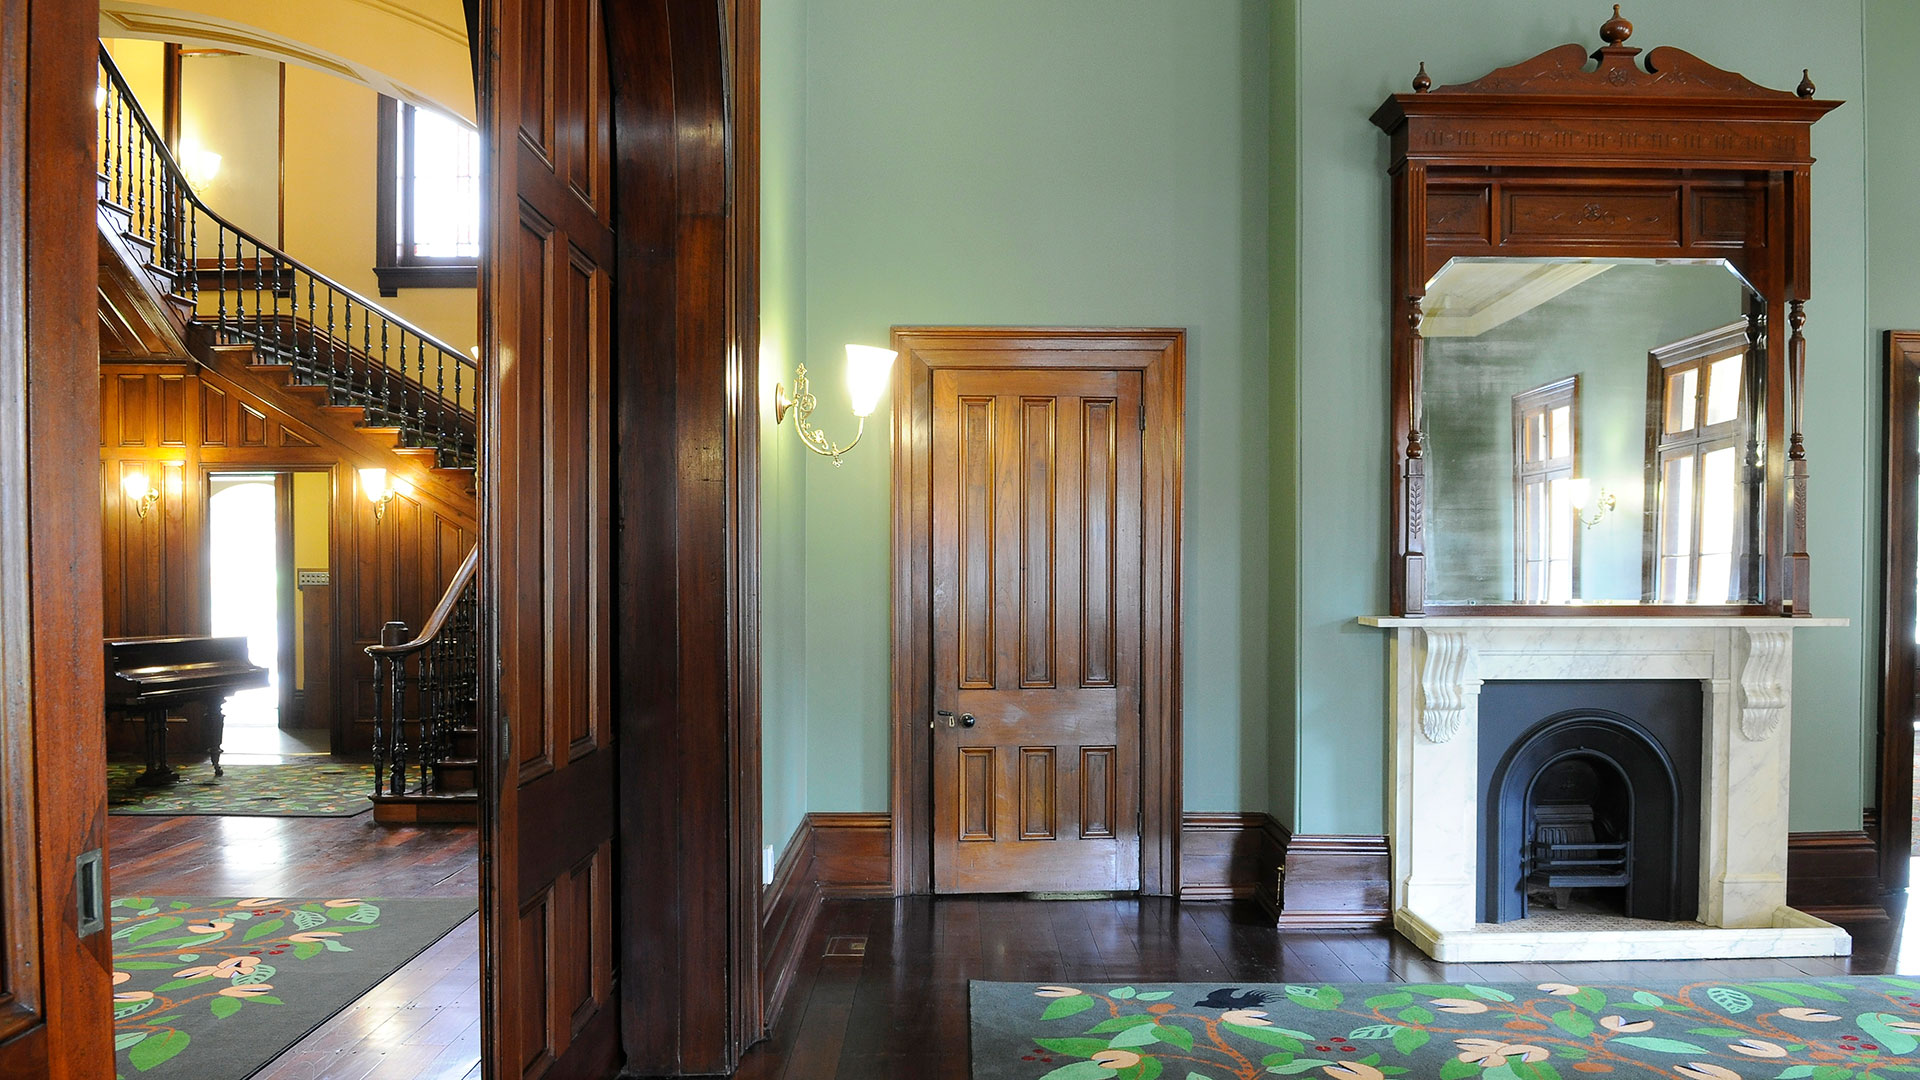 <h2>Old Government House</h2>The Dining Room is an intimate space overlooking the lawns and City Botanic Gardens. Originally the official dining area of the Governor and his guests, The Dining Room is located on the lower floor and interconnects with The Hall. The Dining Room features direct access to the wrap-around verandahs and the original fireplace.